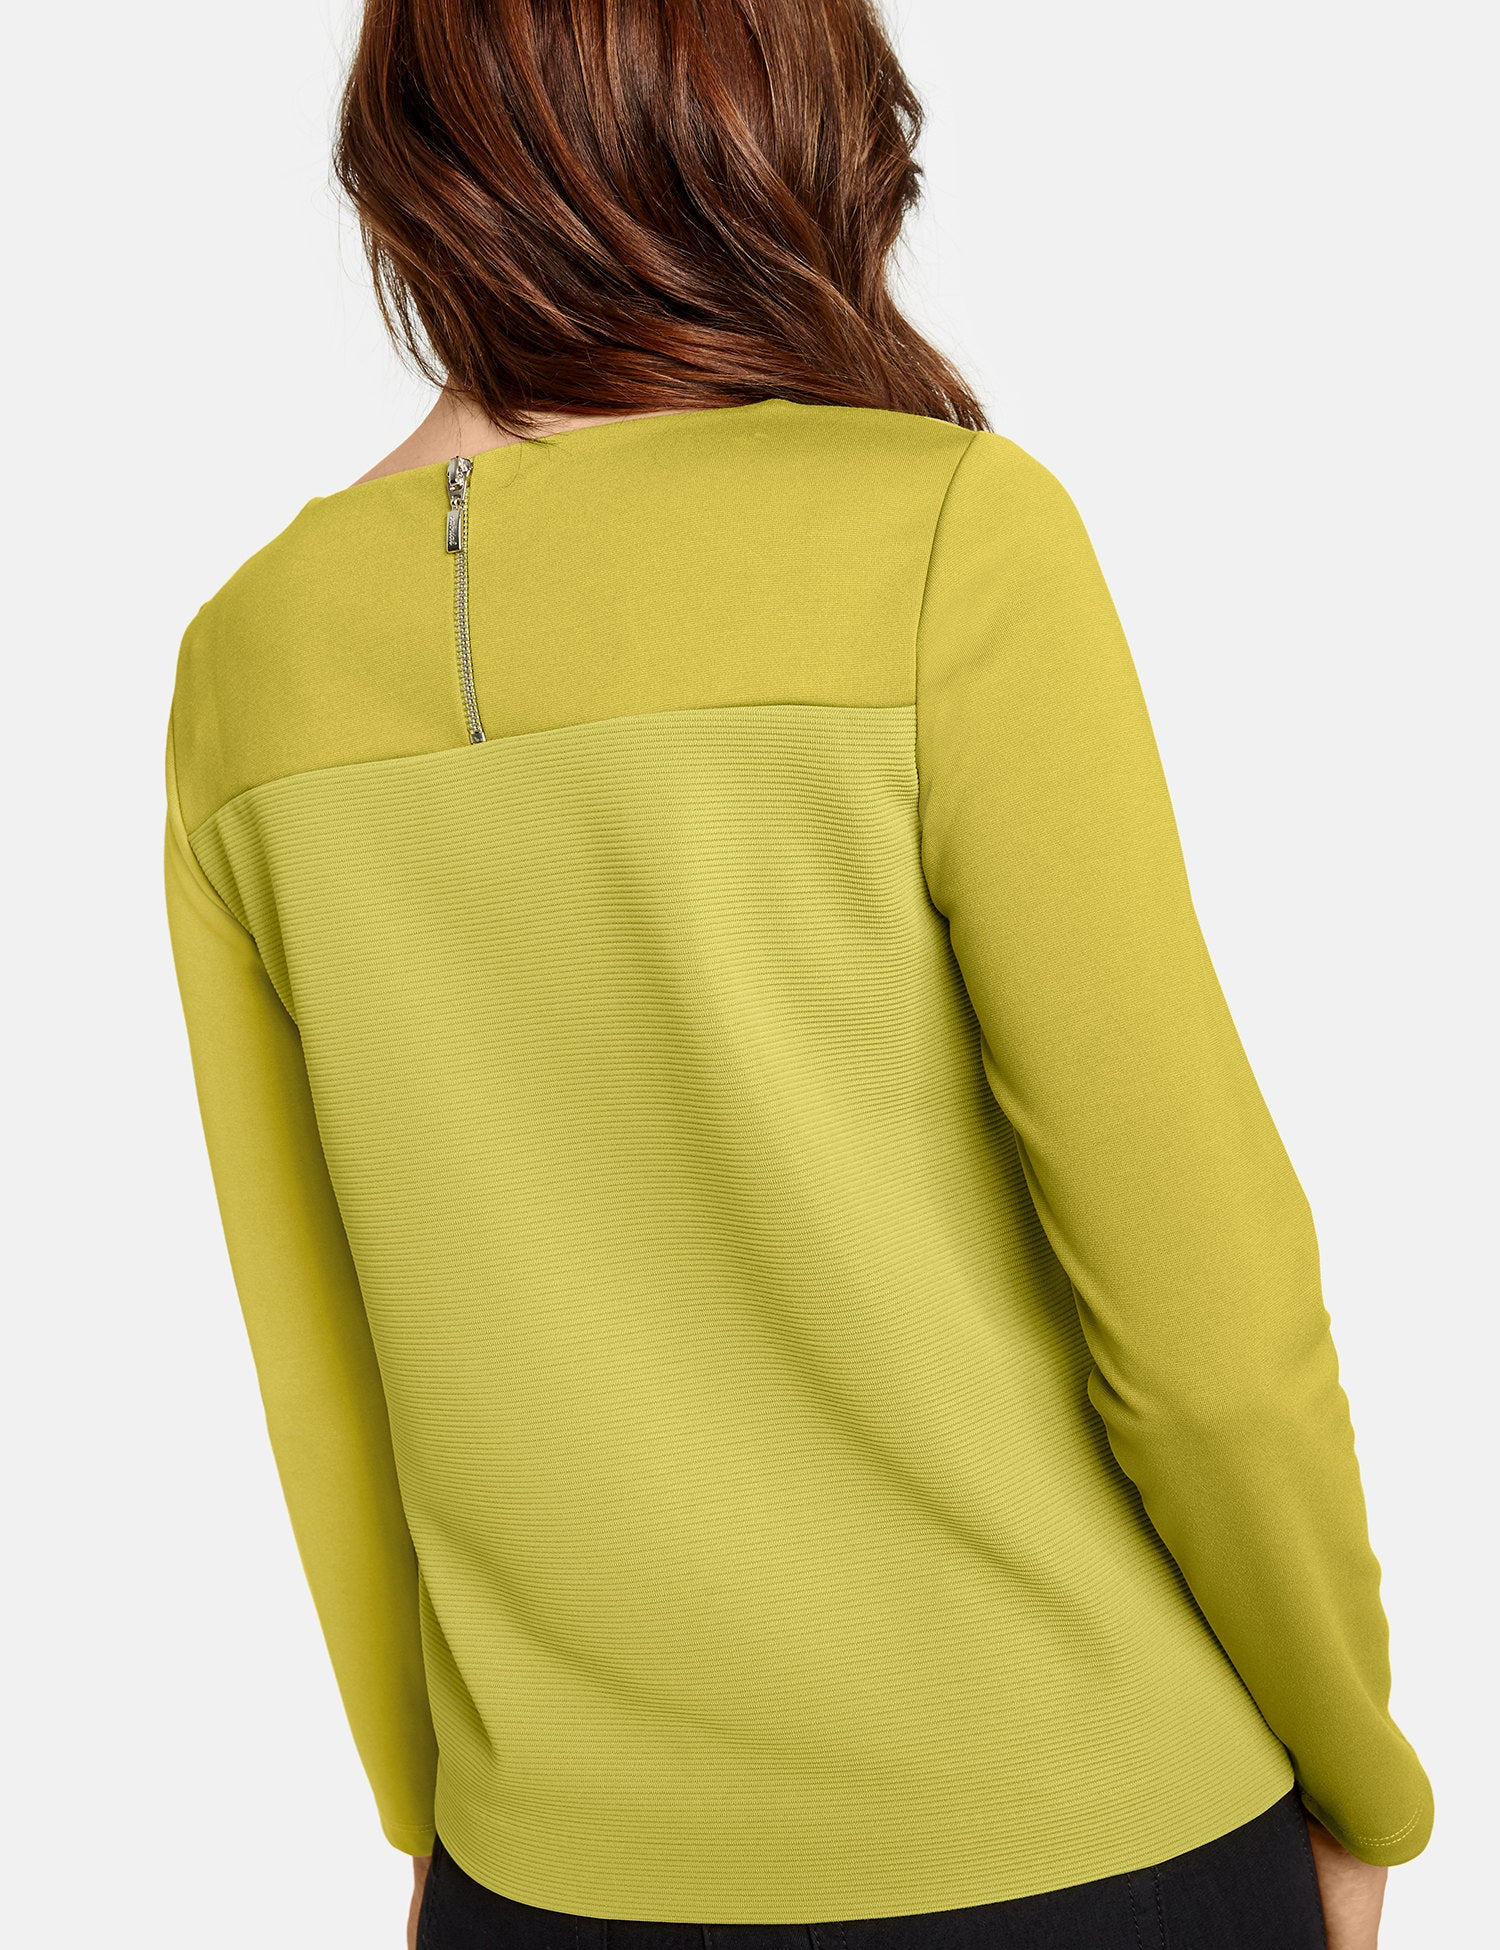 Long Sleeve Top with Textured Details by Gerry Weber at Jophiel